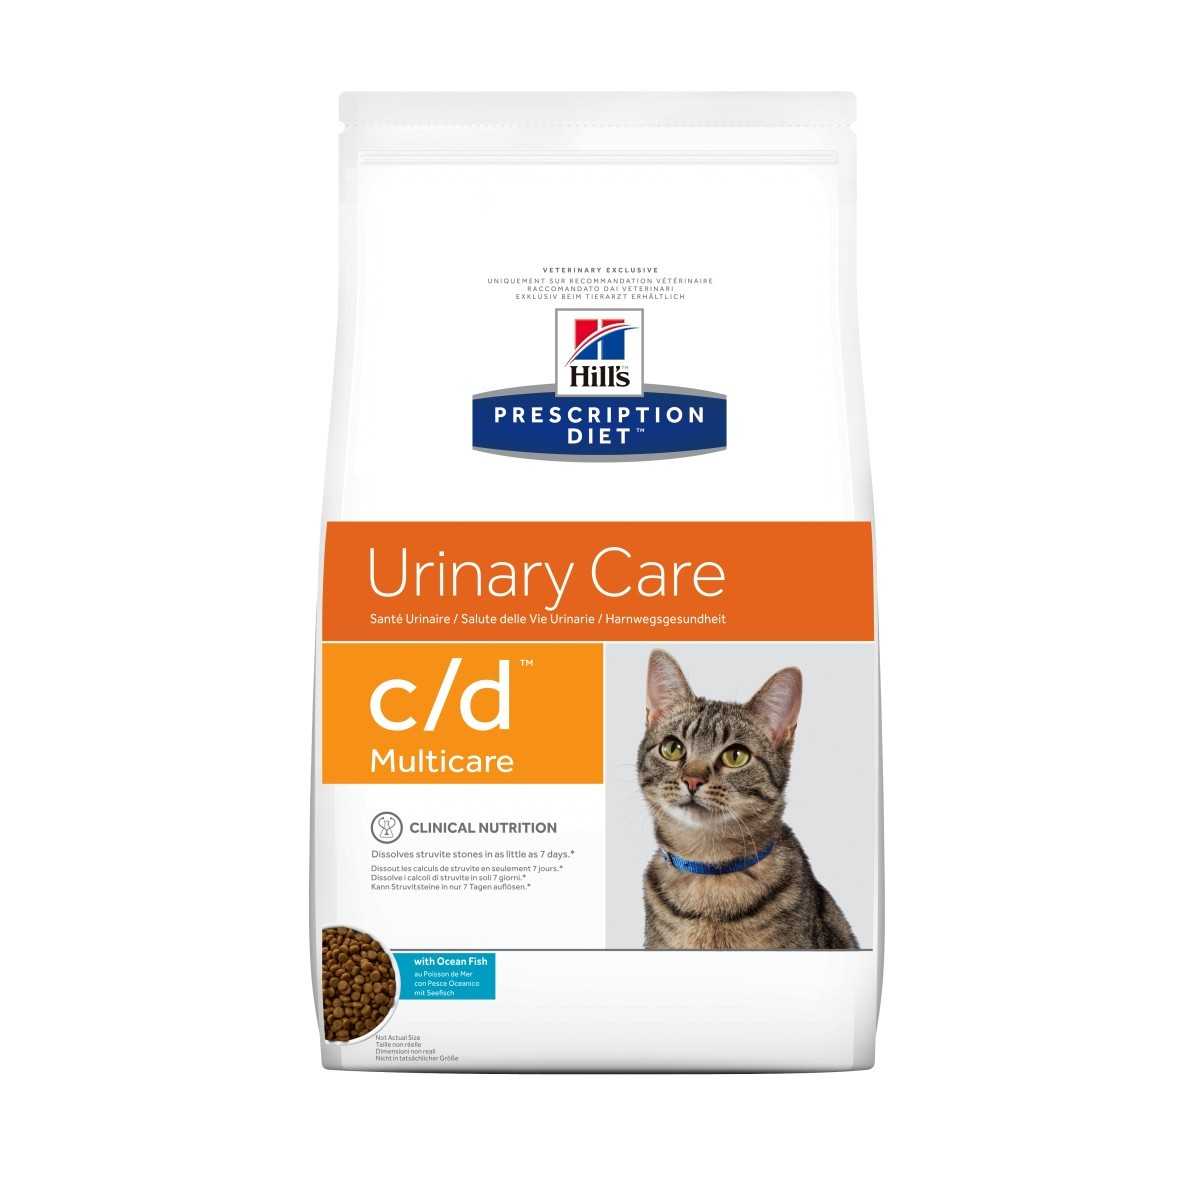 Hill's Prescription Diet Urinary Care C/D Multicare poisson pour chat